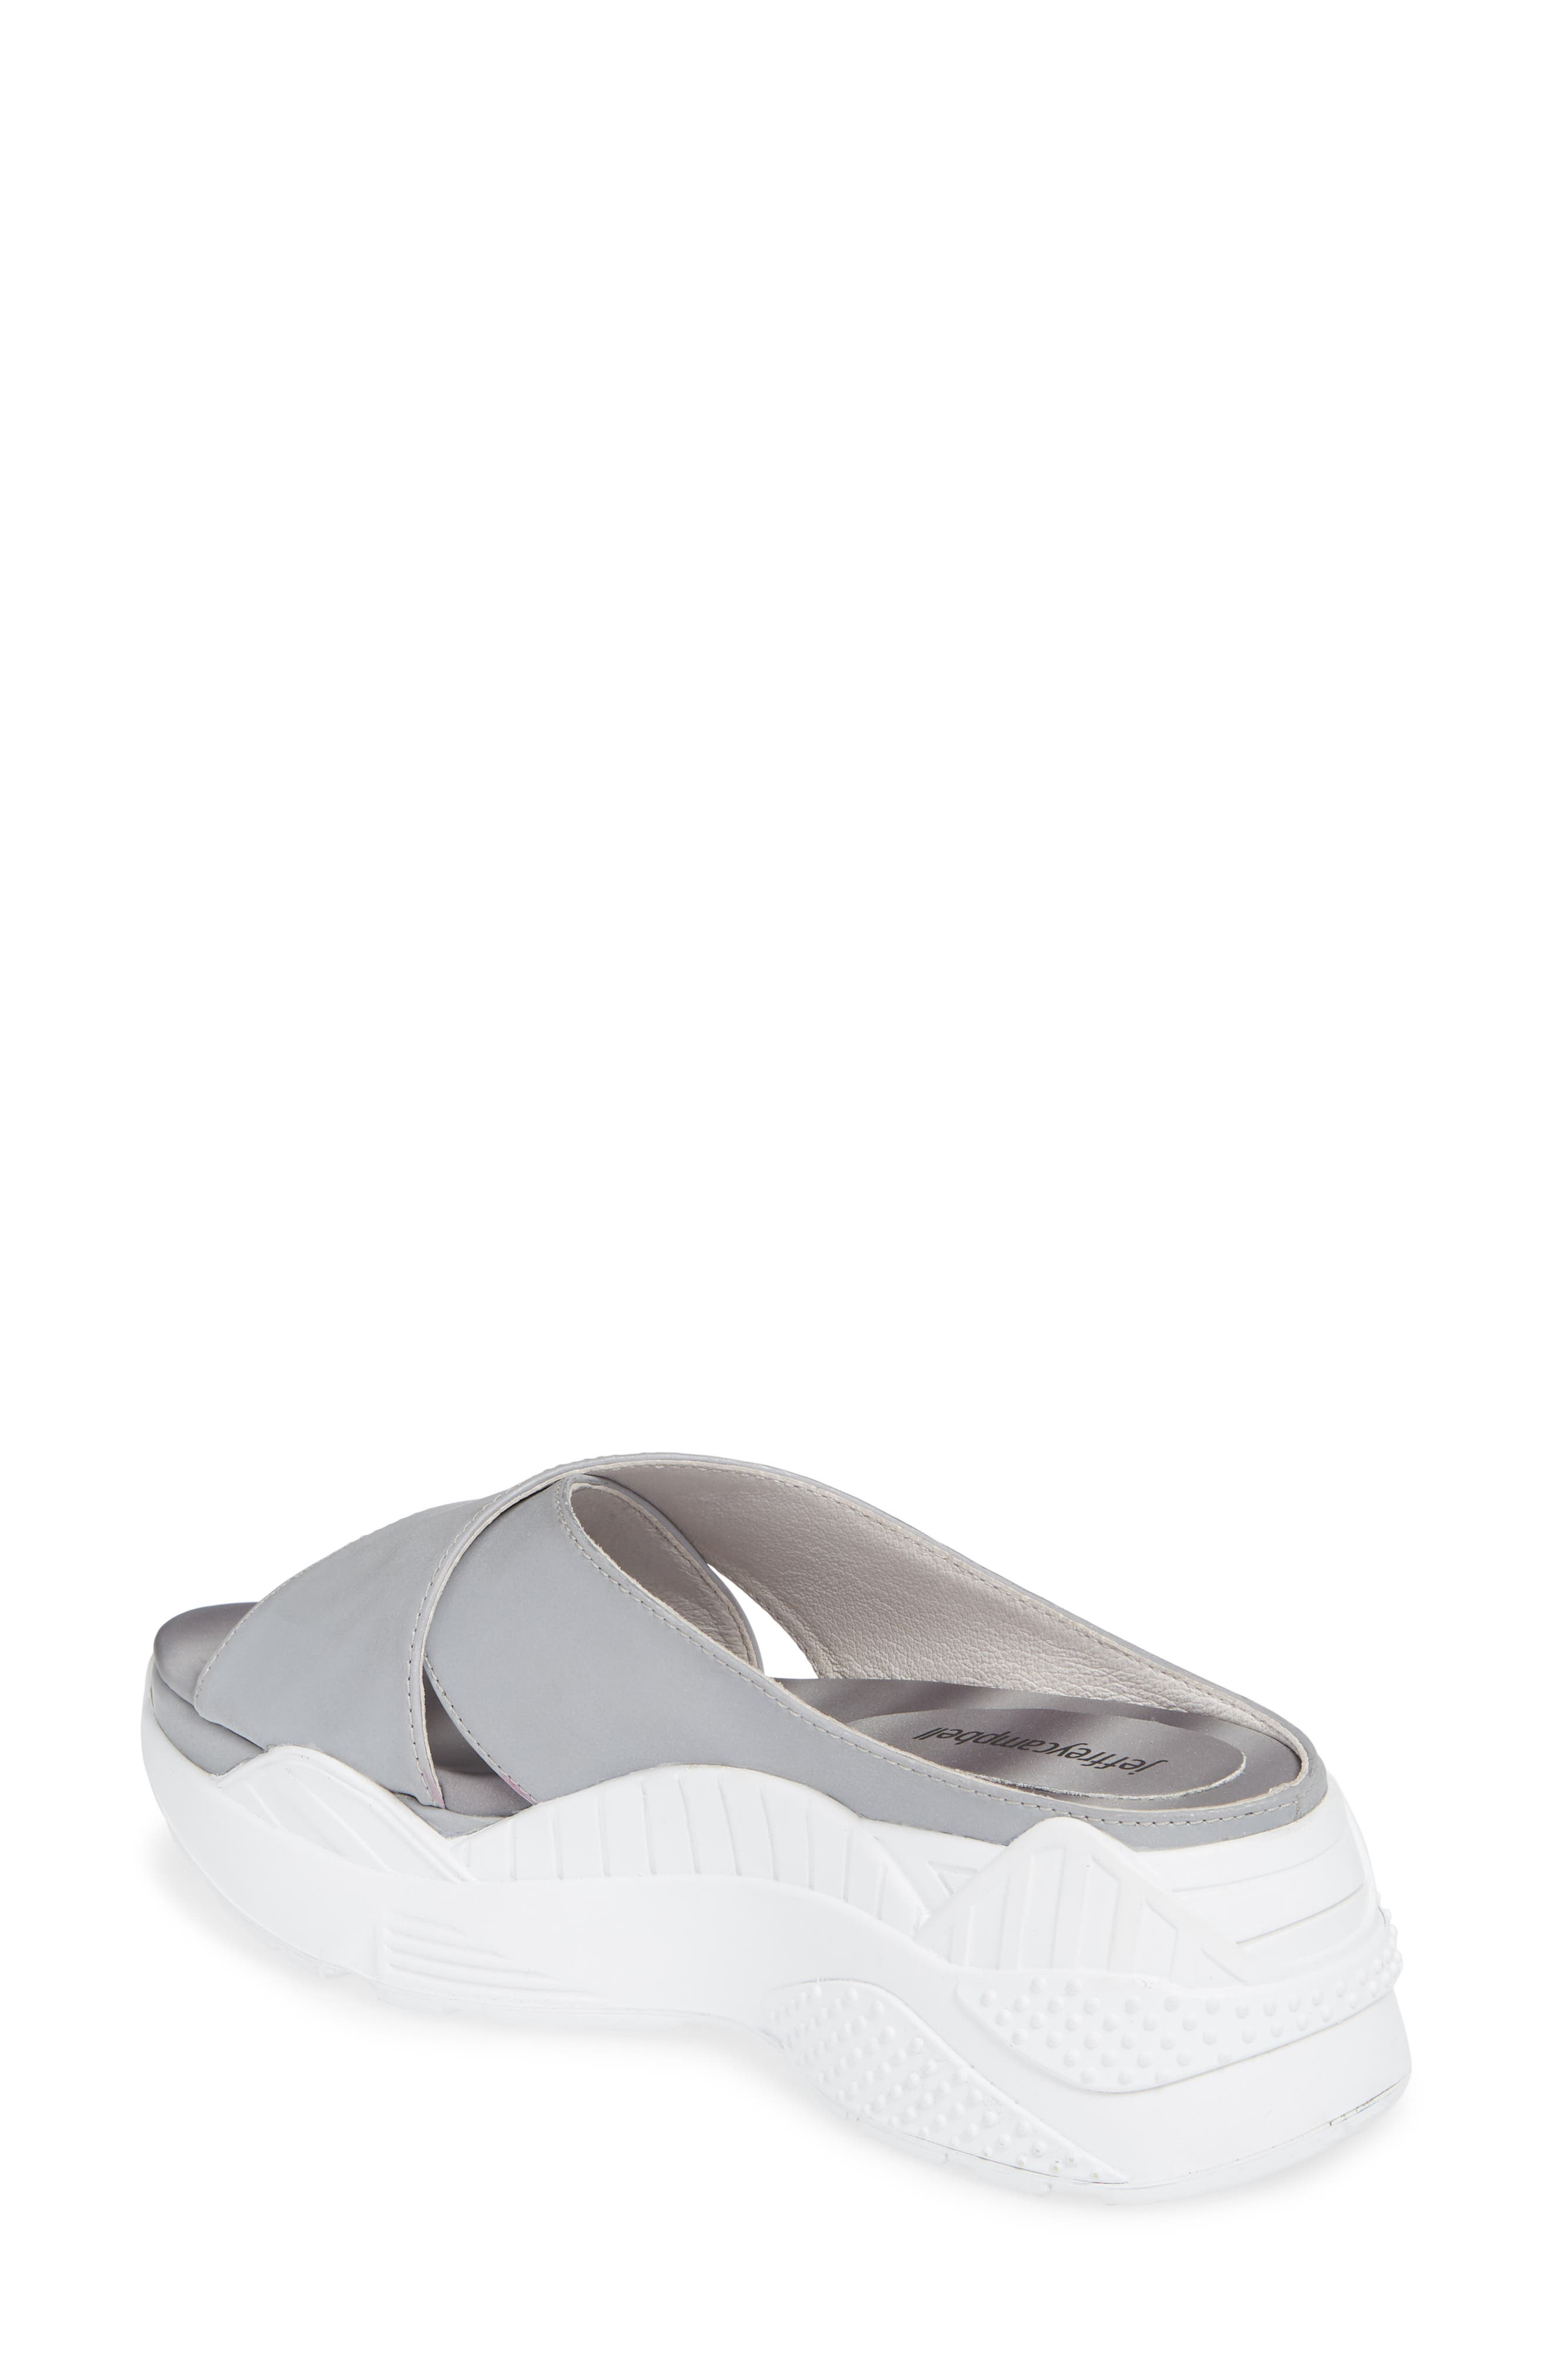 JEFFREY CAMPBELL, Sector Sport Slide Sandal, Alternate thumbnail 2, color, REFLECTIVE